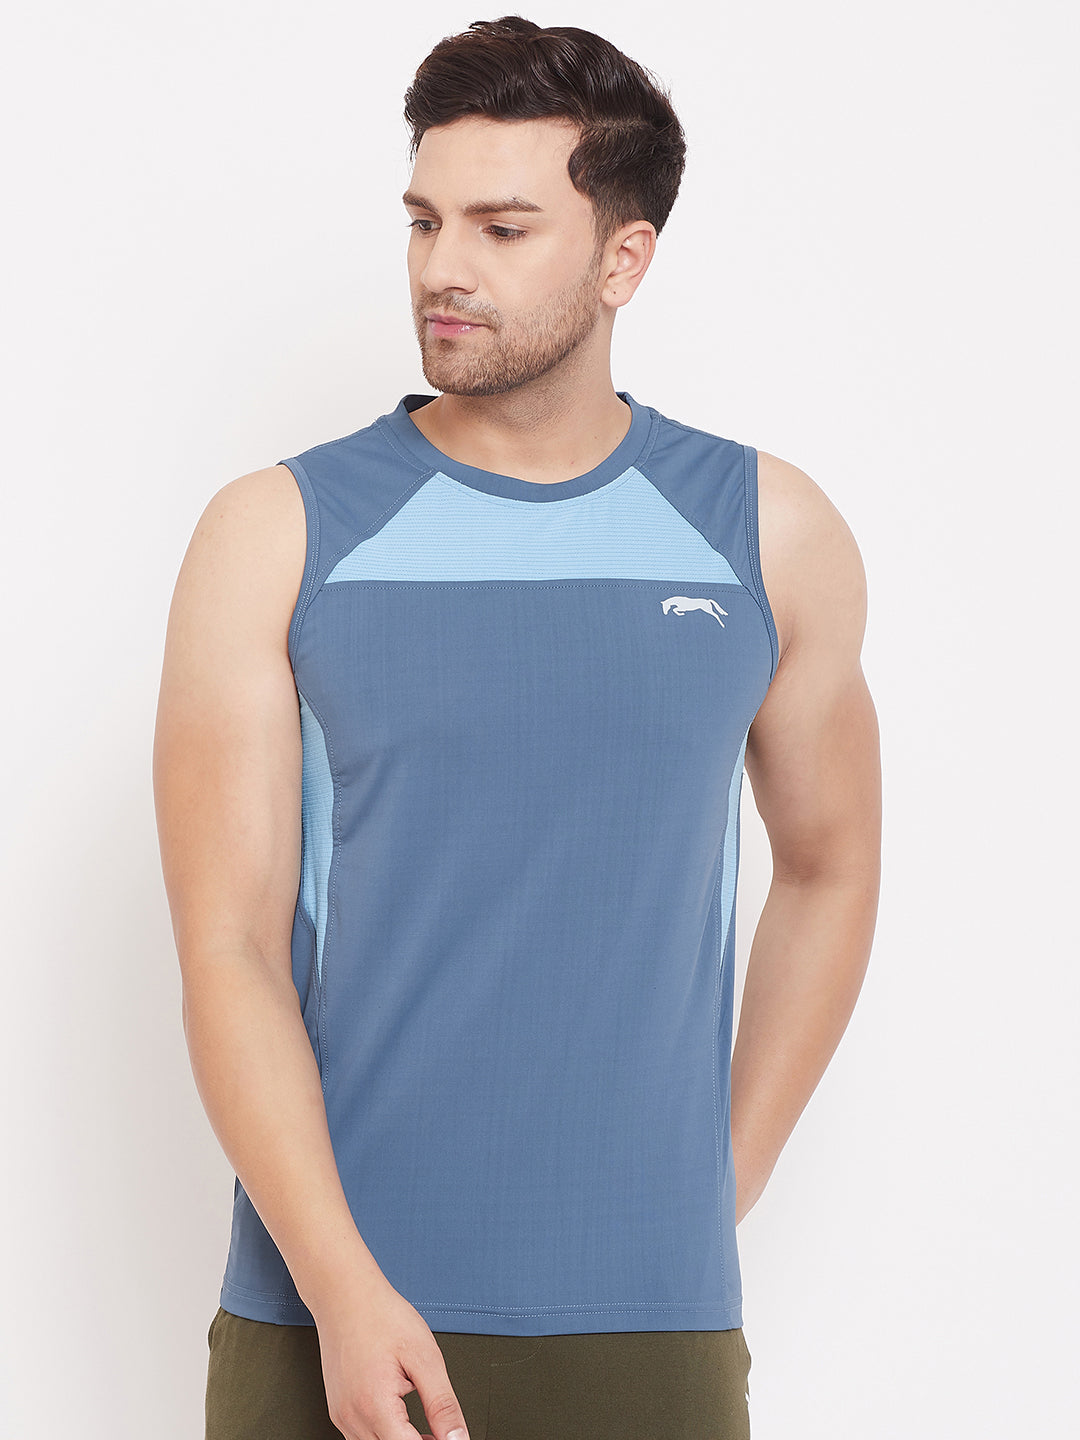 JUMP USA Men Solid Blue Sleeveless Training T-shirt